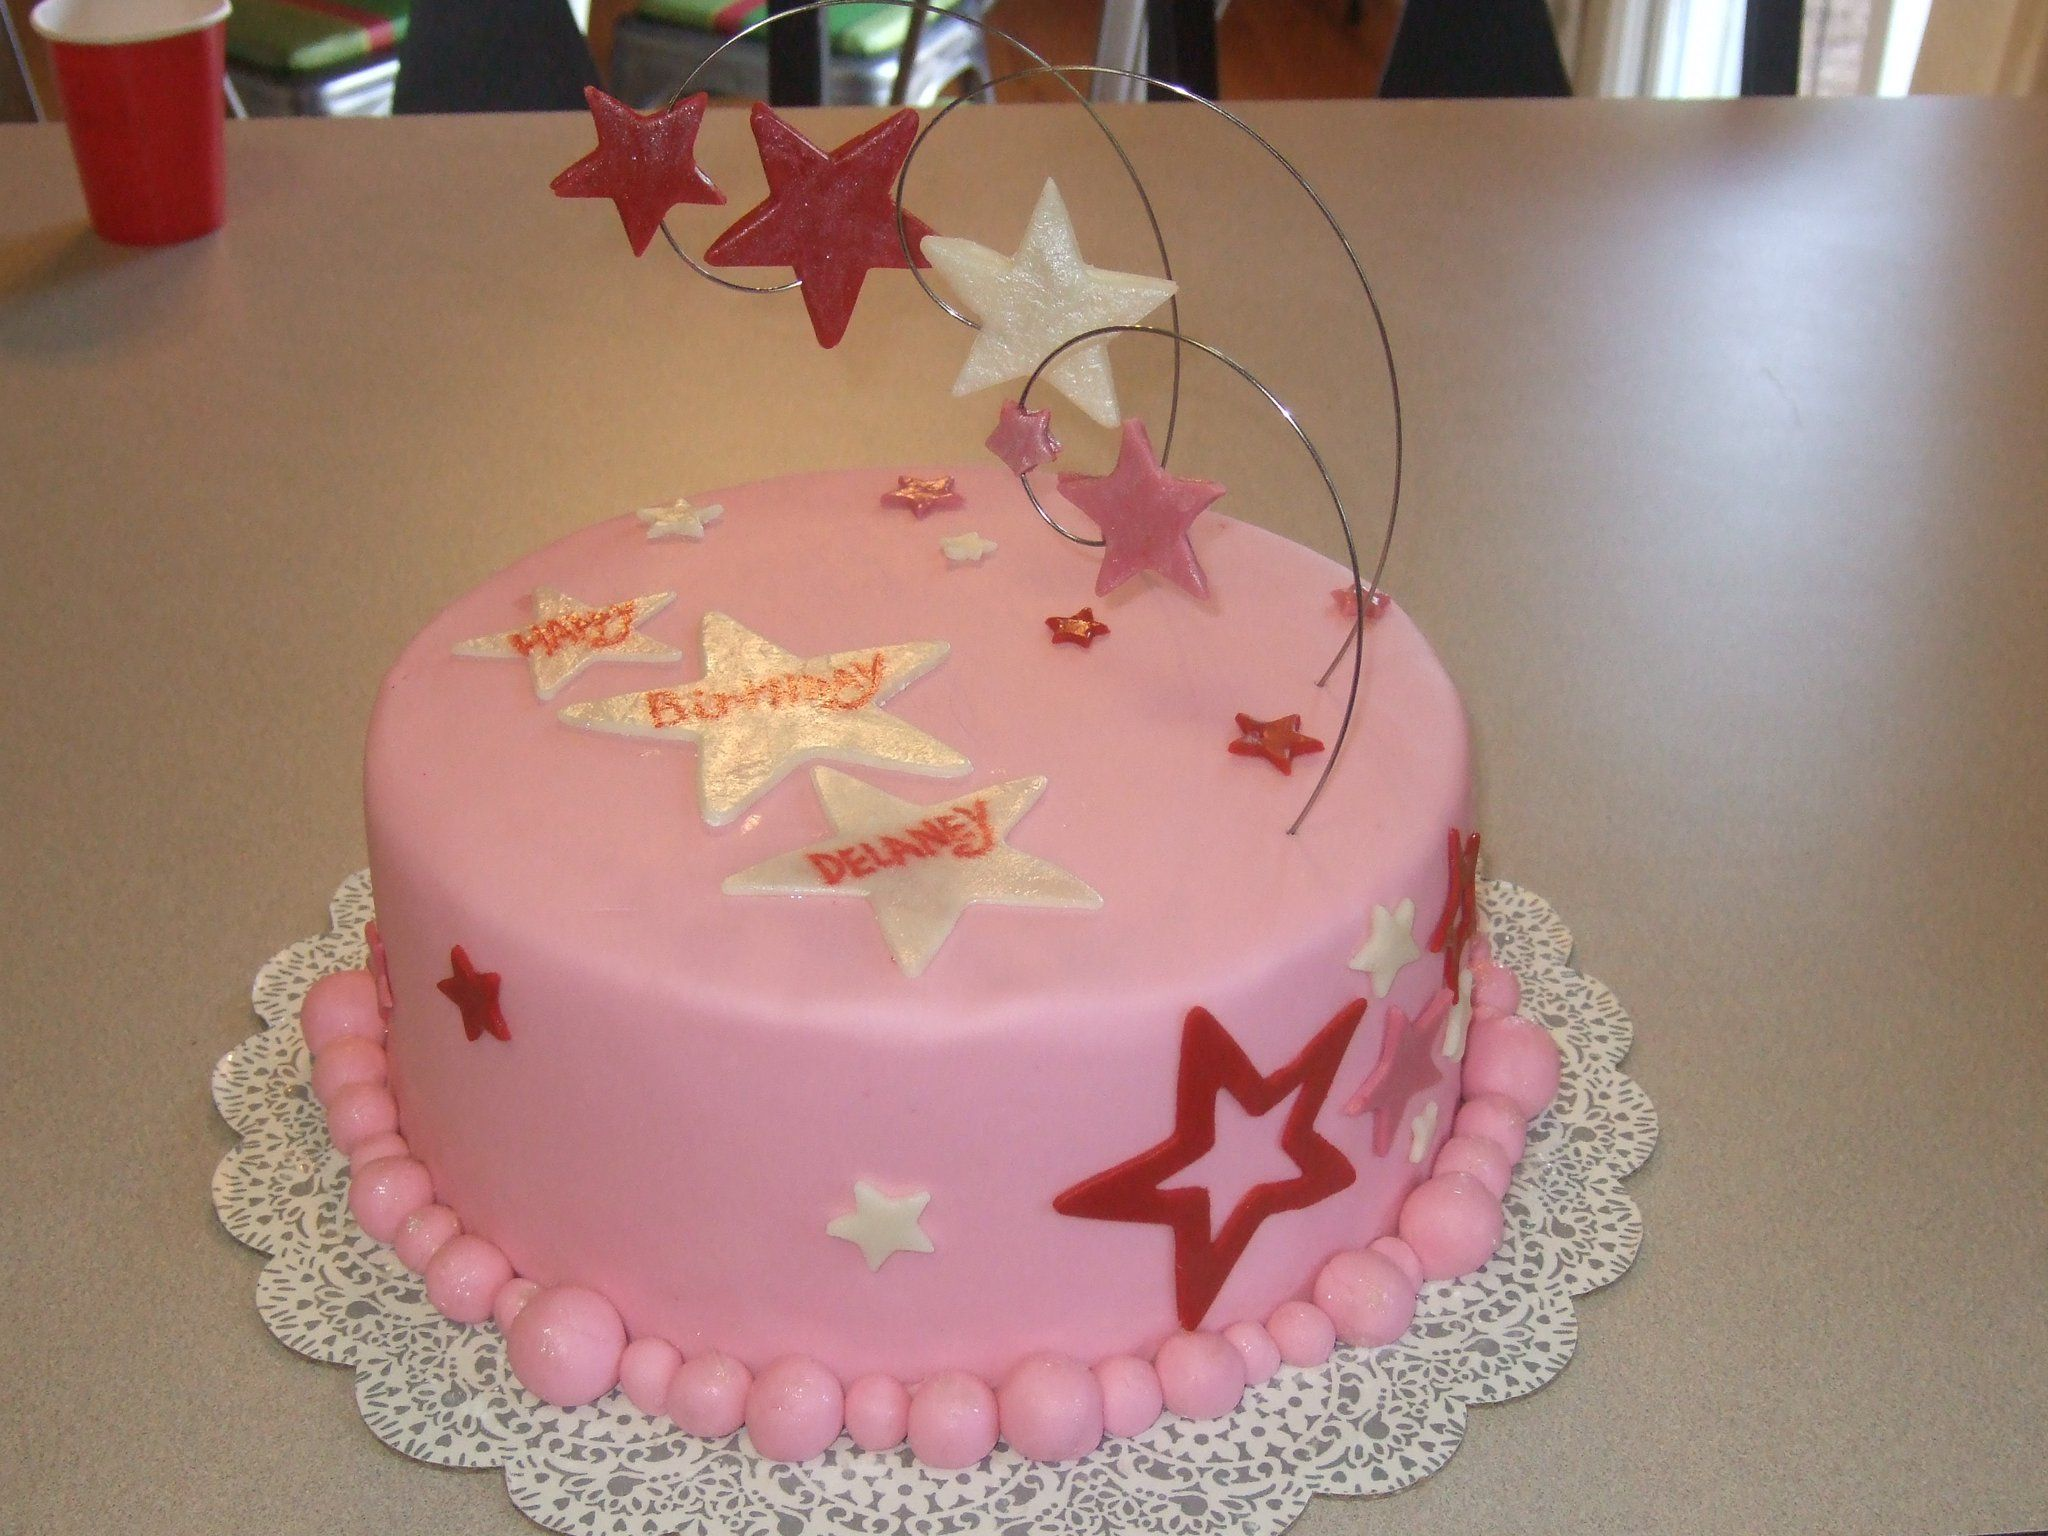 Terrific American Girl Cake With Images American Girl Birthday Personalised Birthday Cards Paralily Jamesorg